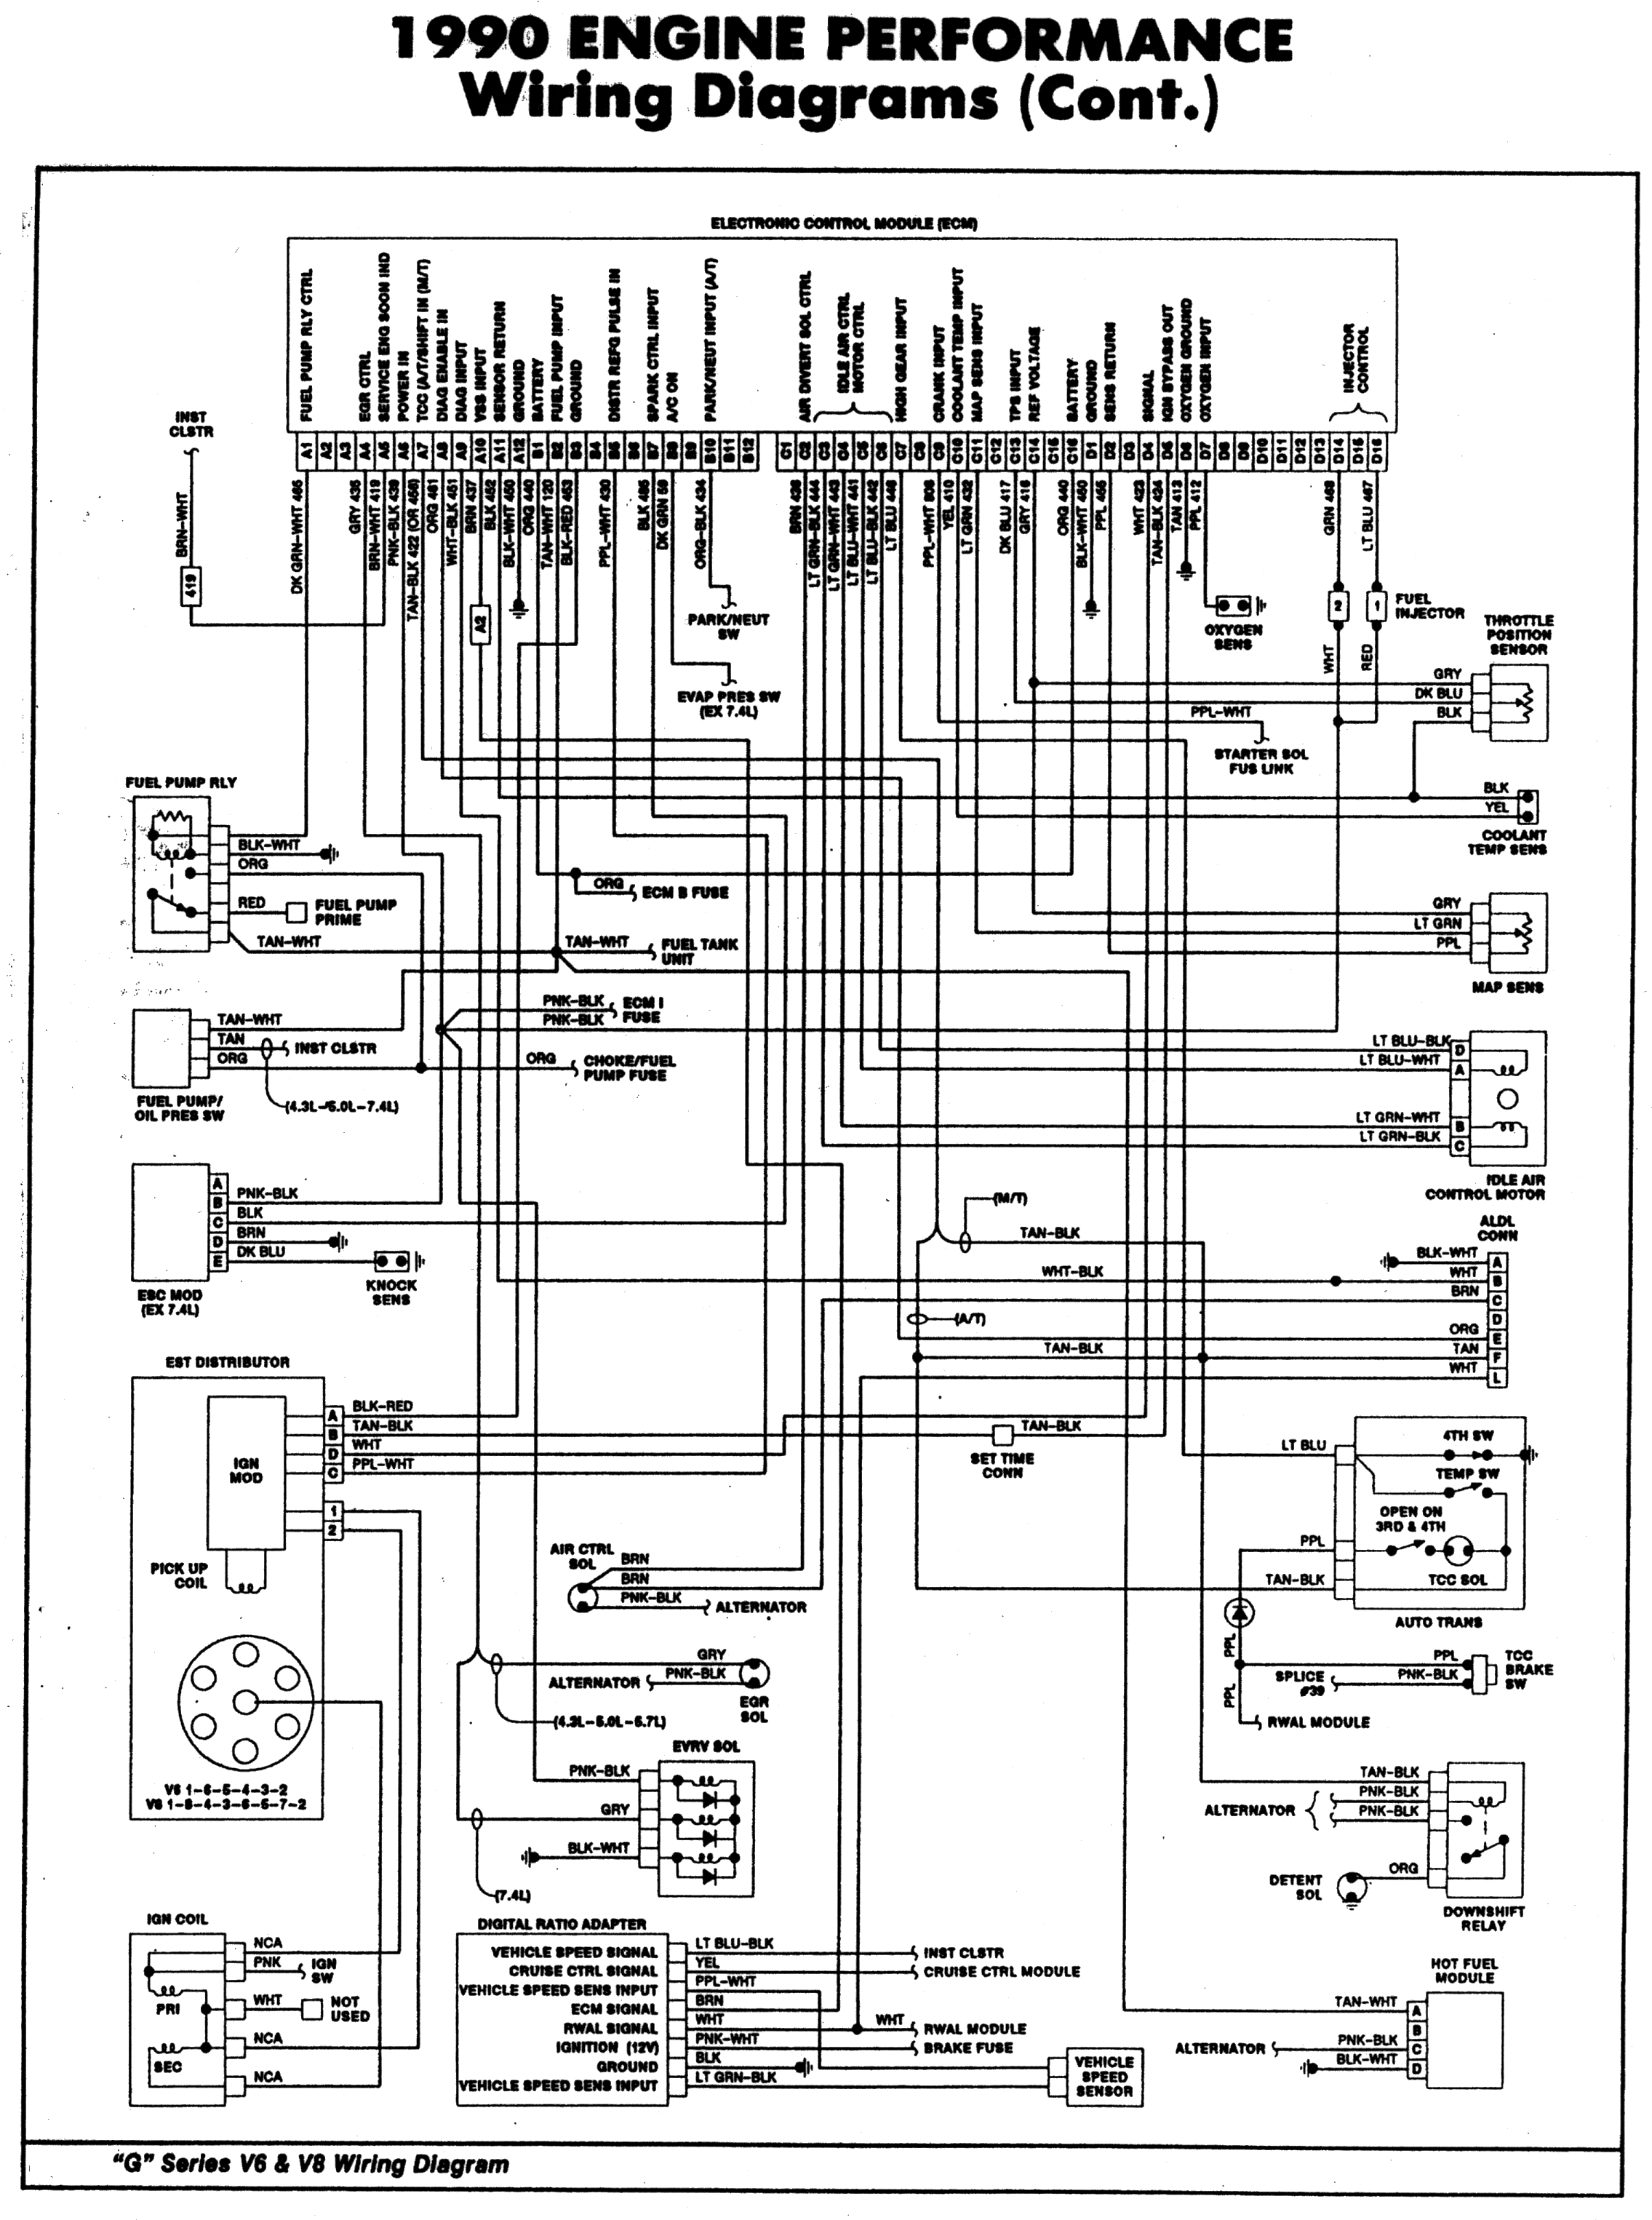 Enjoyable 90 Chevy Truck Wiring Diagram Wiring Diagram Explained 1990 Wiring Cloud Hisonuggs Outletorg